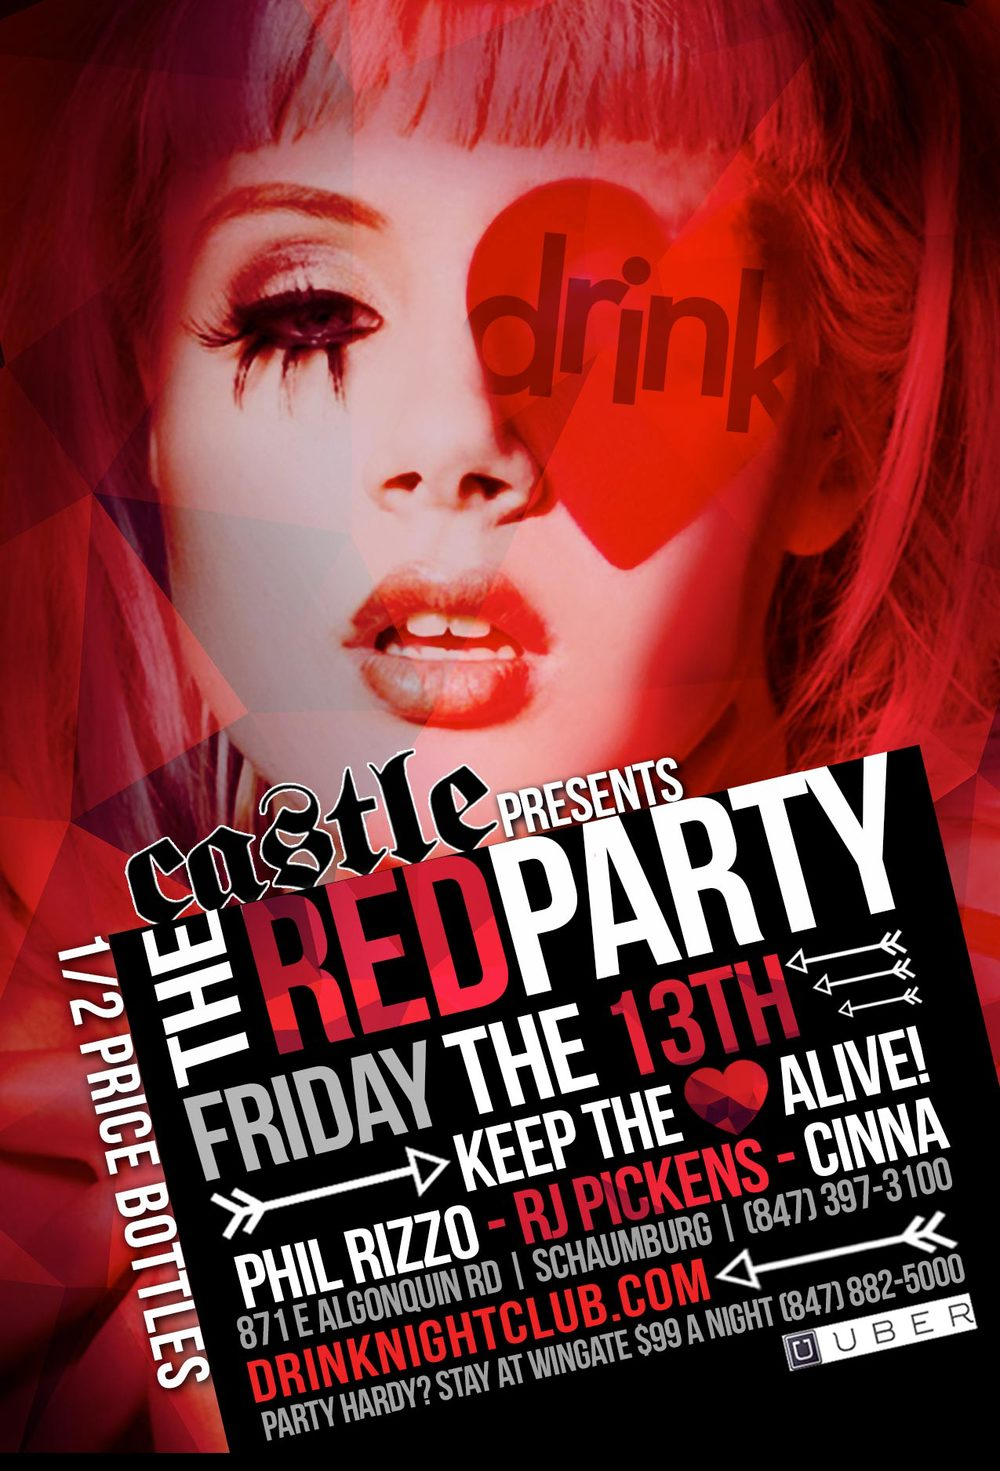 Drink Nightclub, Castle presents The Red Party